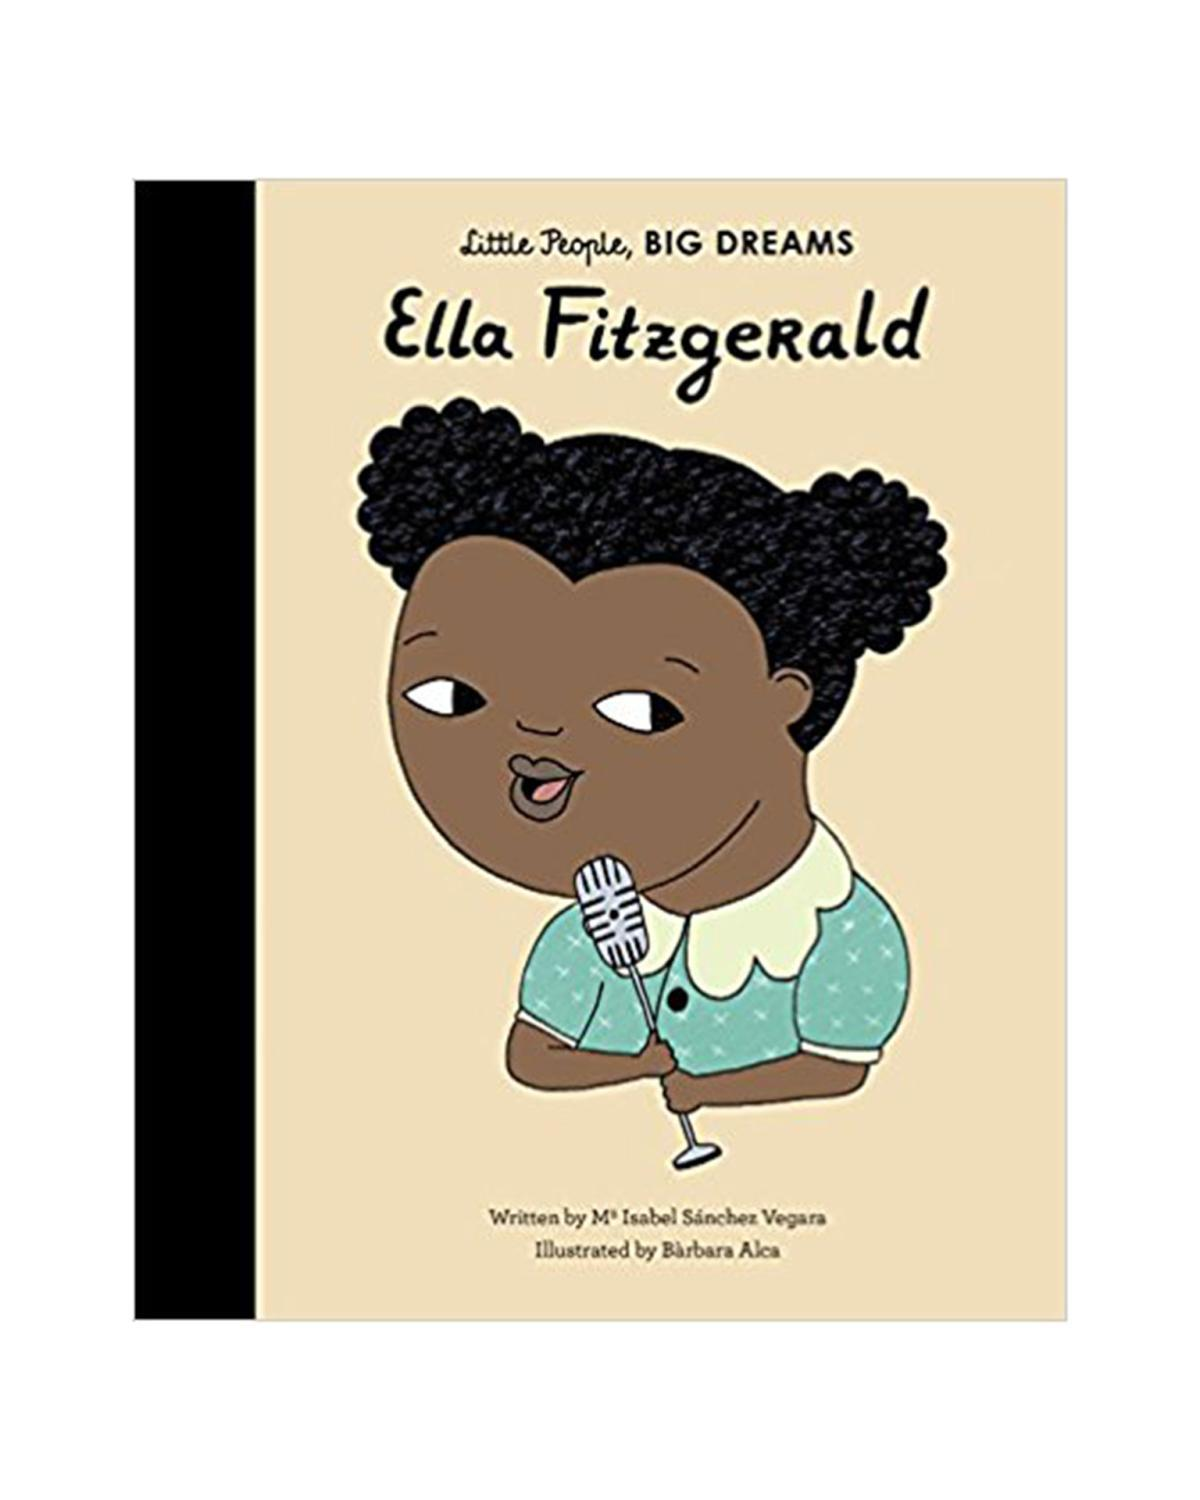 Little quarto publishing group play little people, big dreams: ella fitzgerald